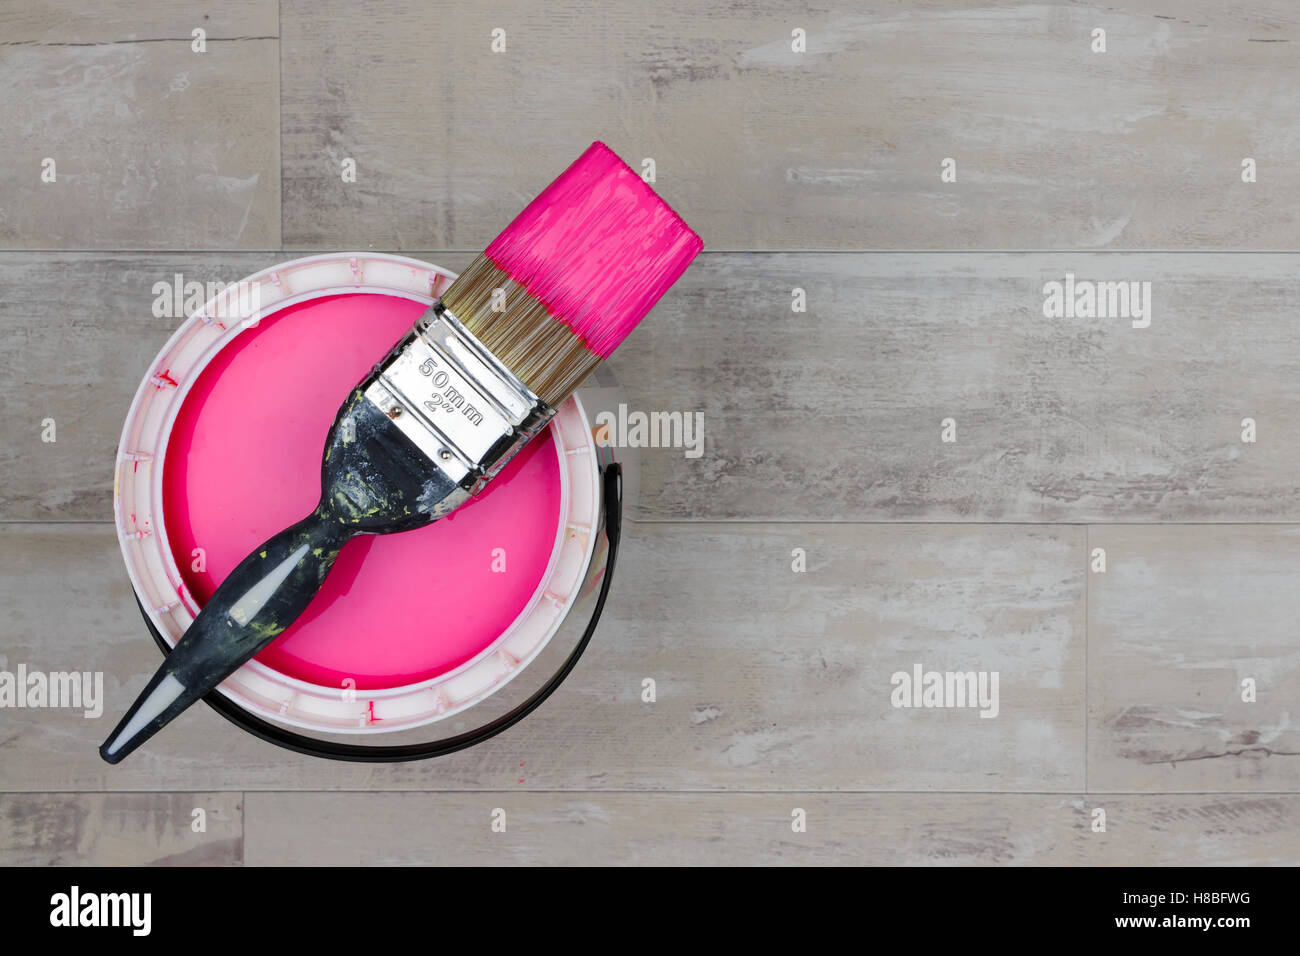 Can of magenta Paint with a loaded brush stood on a shabby style wood floor - Stock Image